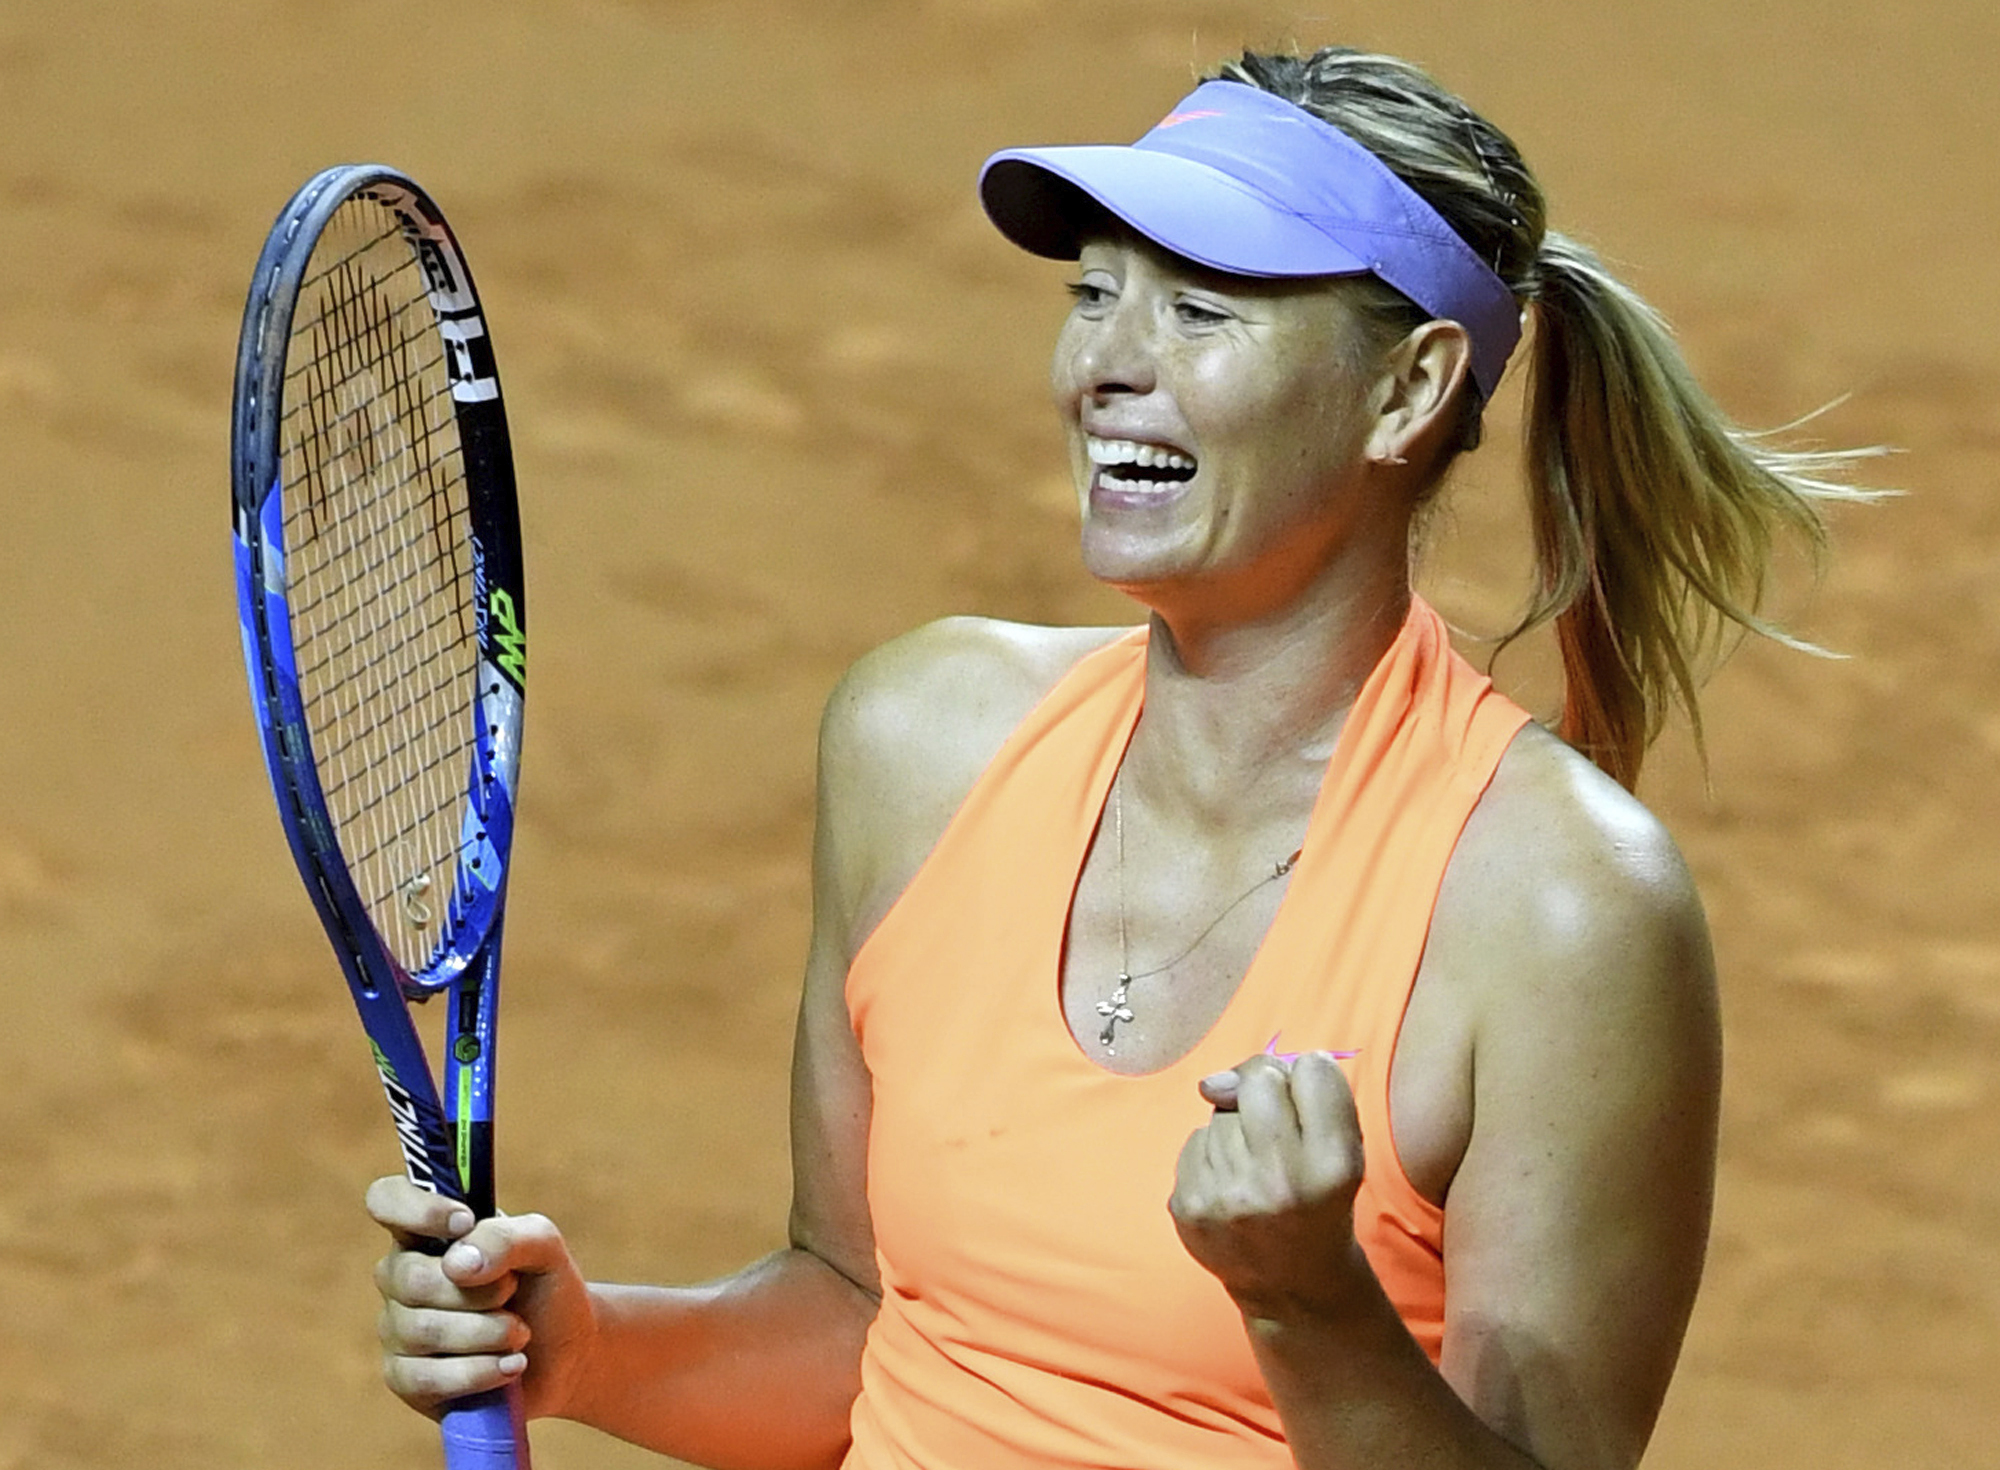 Russia's Maria Sharapova celebrates her victory against Estonia's Anett Kontaveit during their quarterfinal match at the WTA tennis tournament in Stuttgart, Germany, Friday, April 28, 2017. (Bernd Weissbrod/dpa via AP)